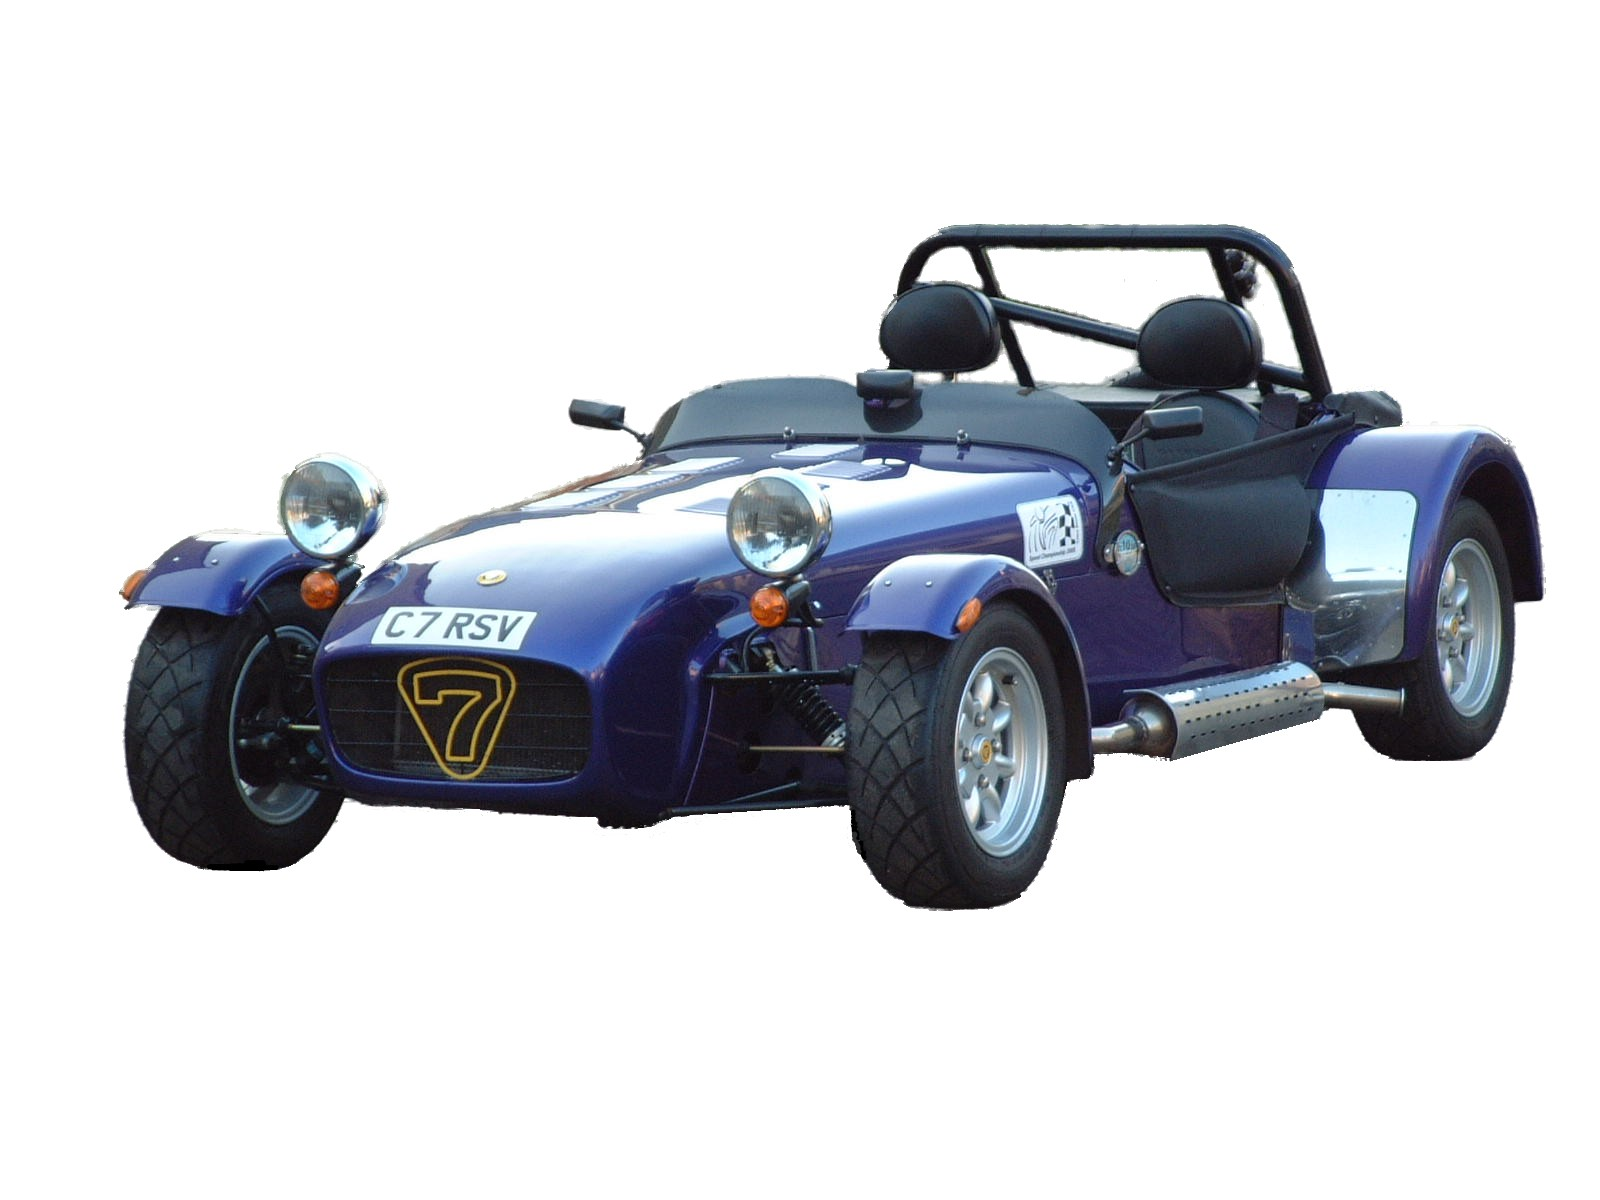 Caterham Roadsport image #2